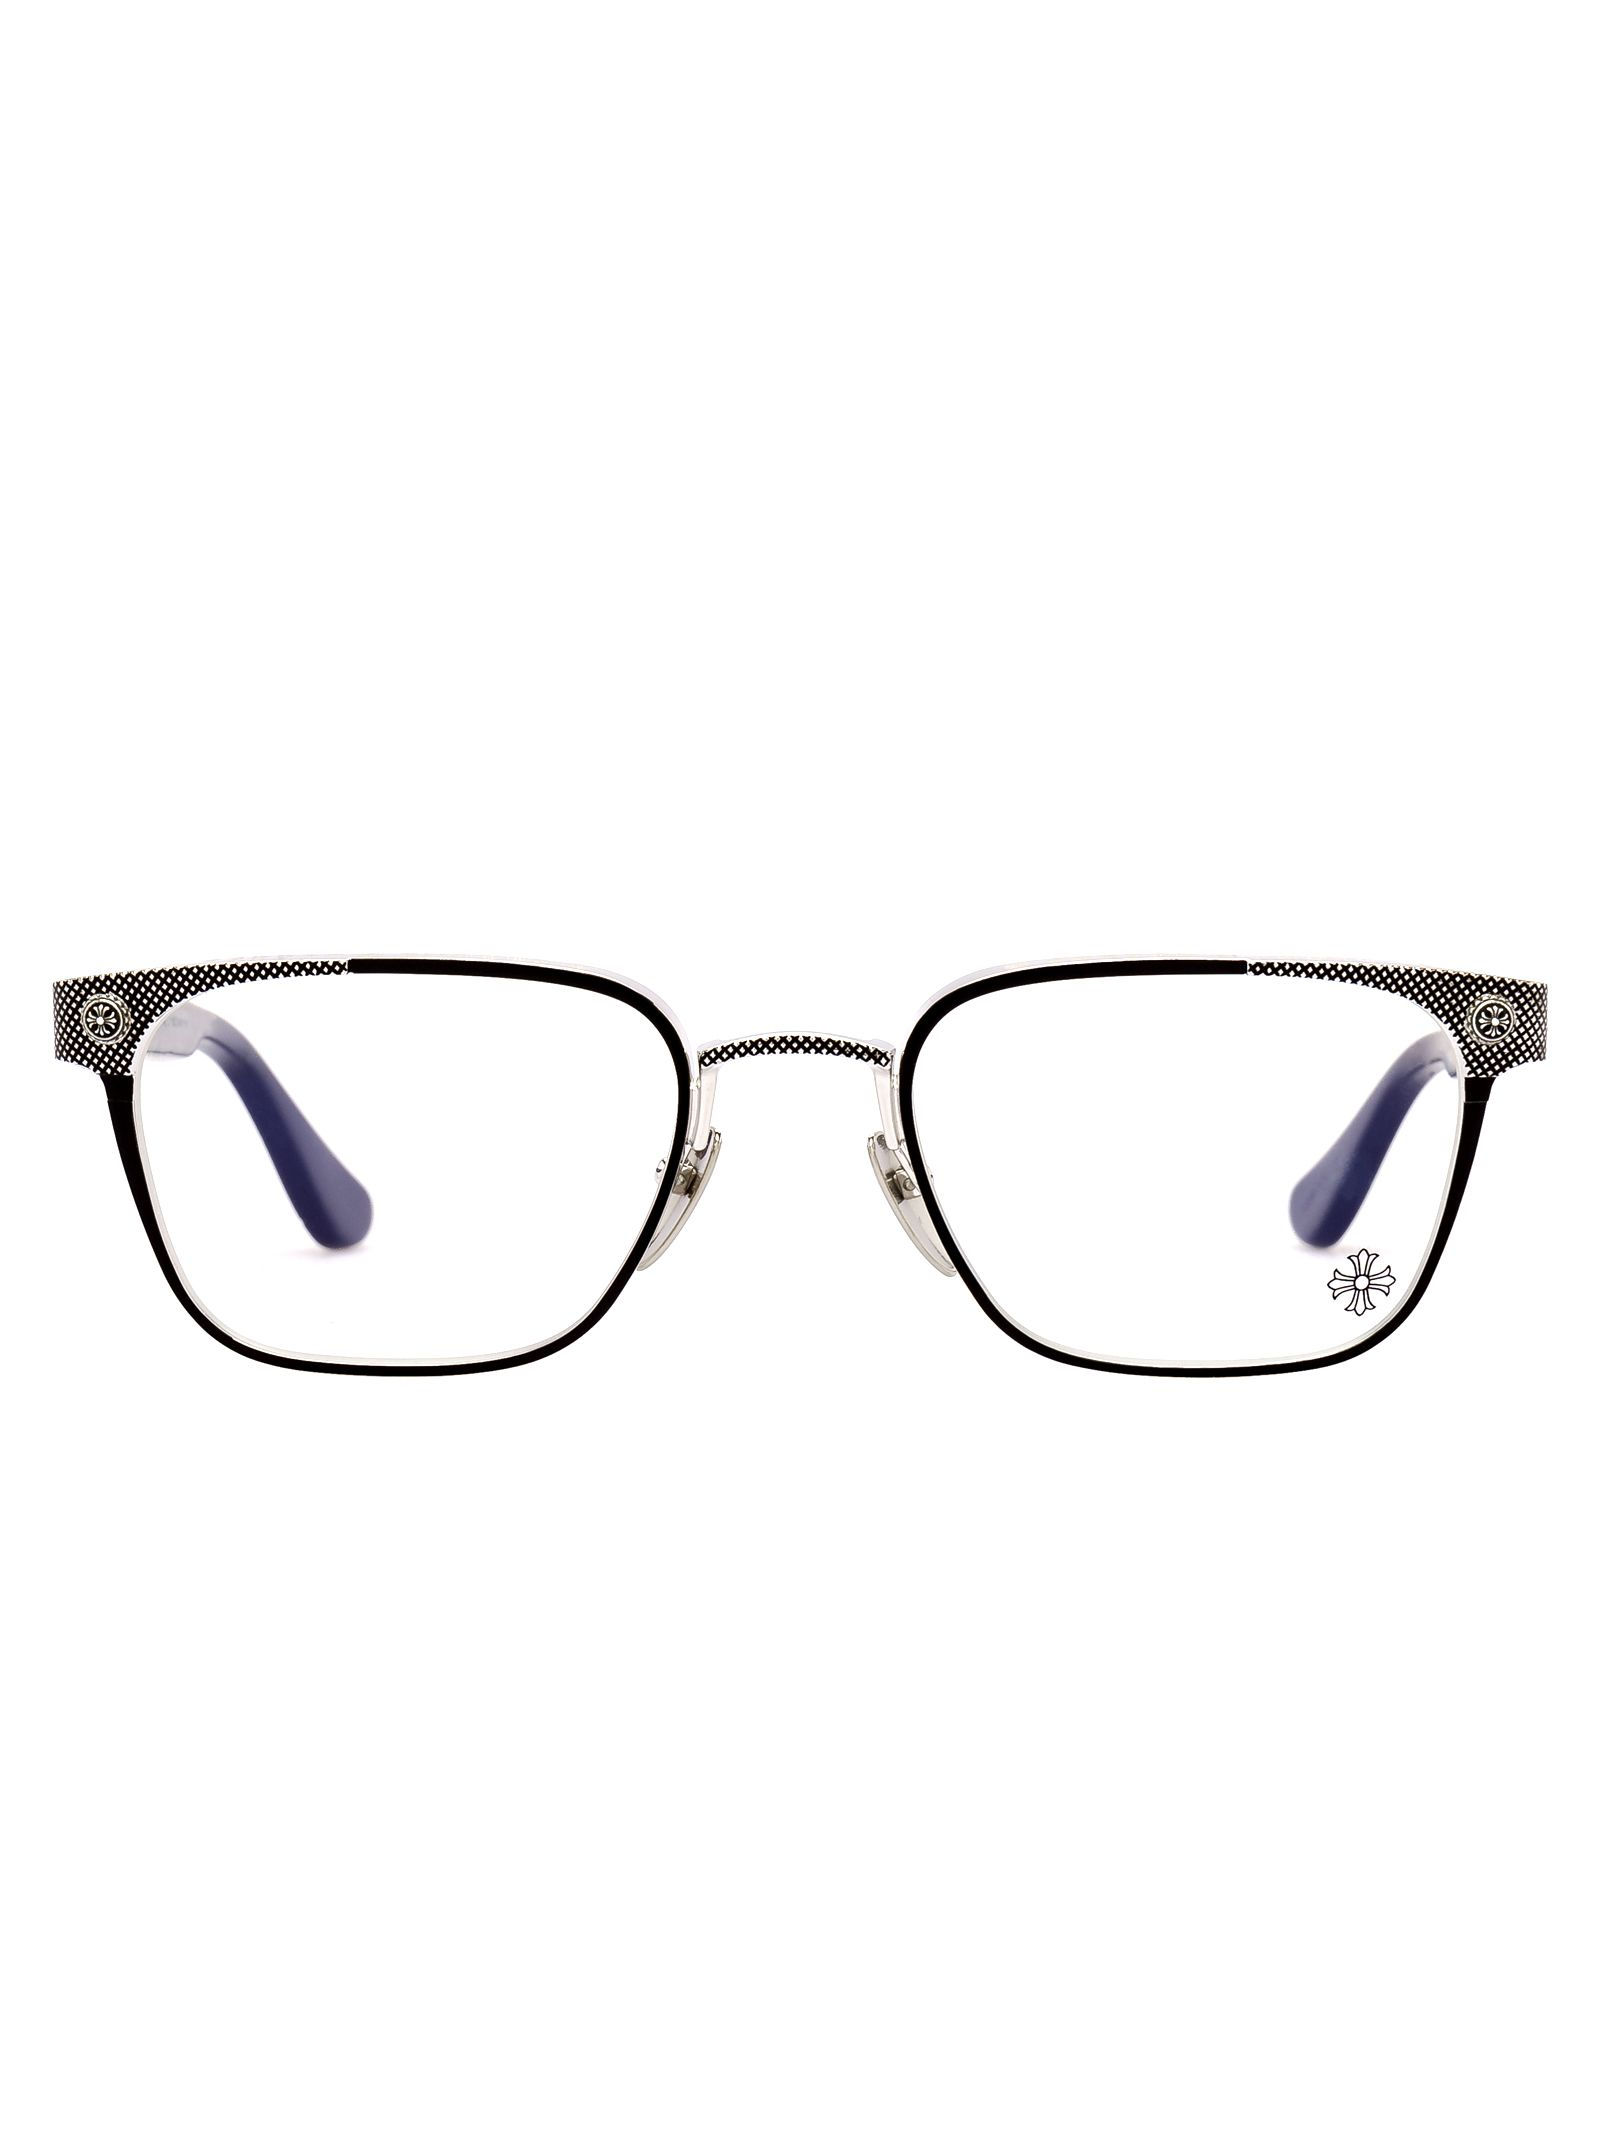 CHROME HEARTS Nastyfreeze Glasses in Mbk/Ss/Mbk/P